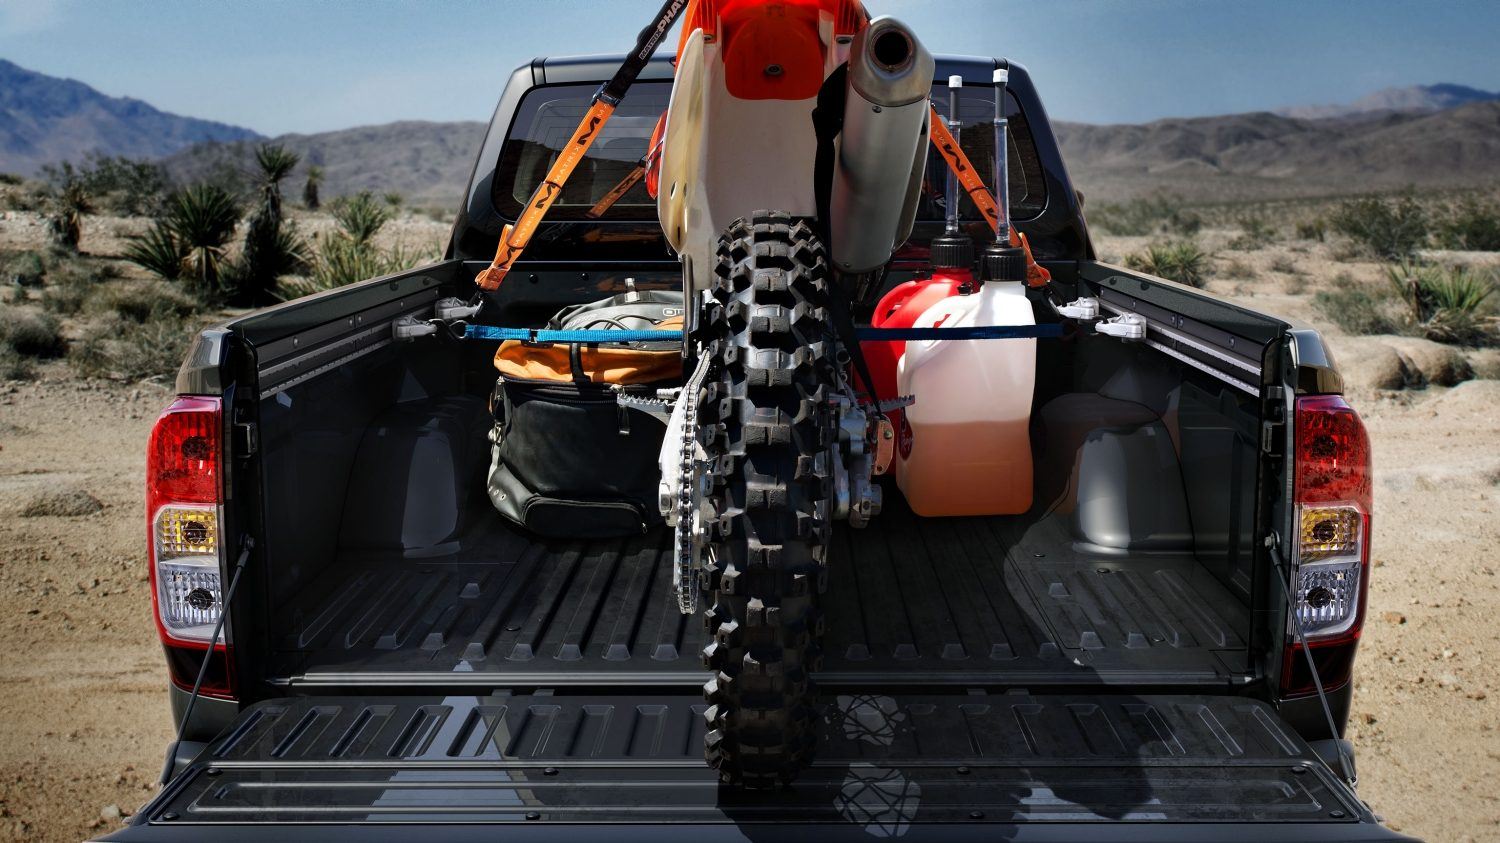 Rear Static Shot of Cargo Bed with Dirt Bike Loaded in Desert